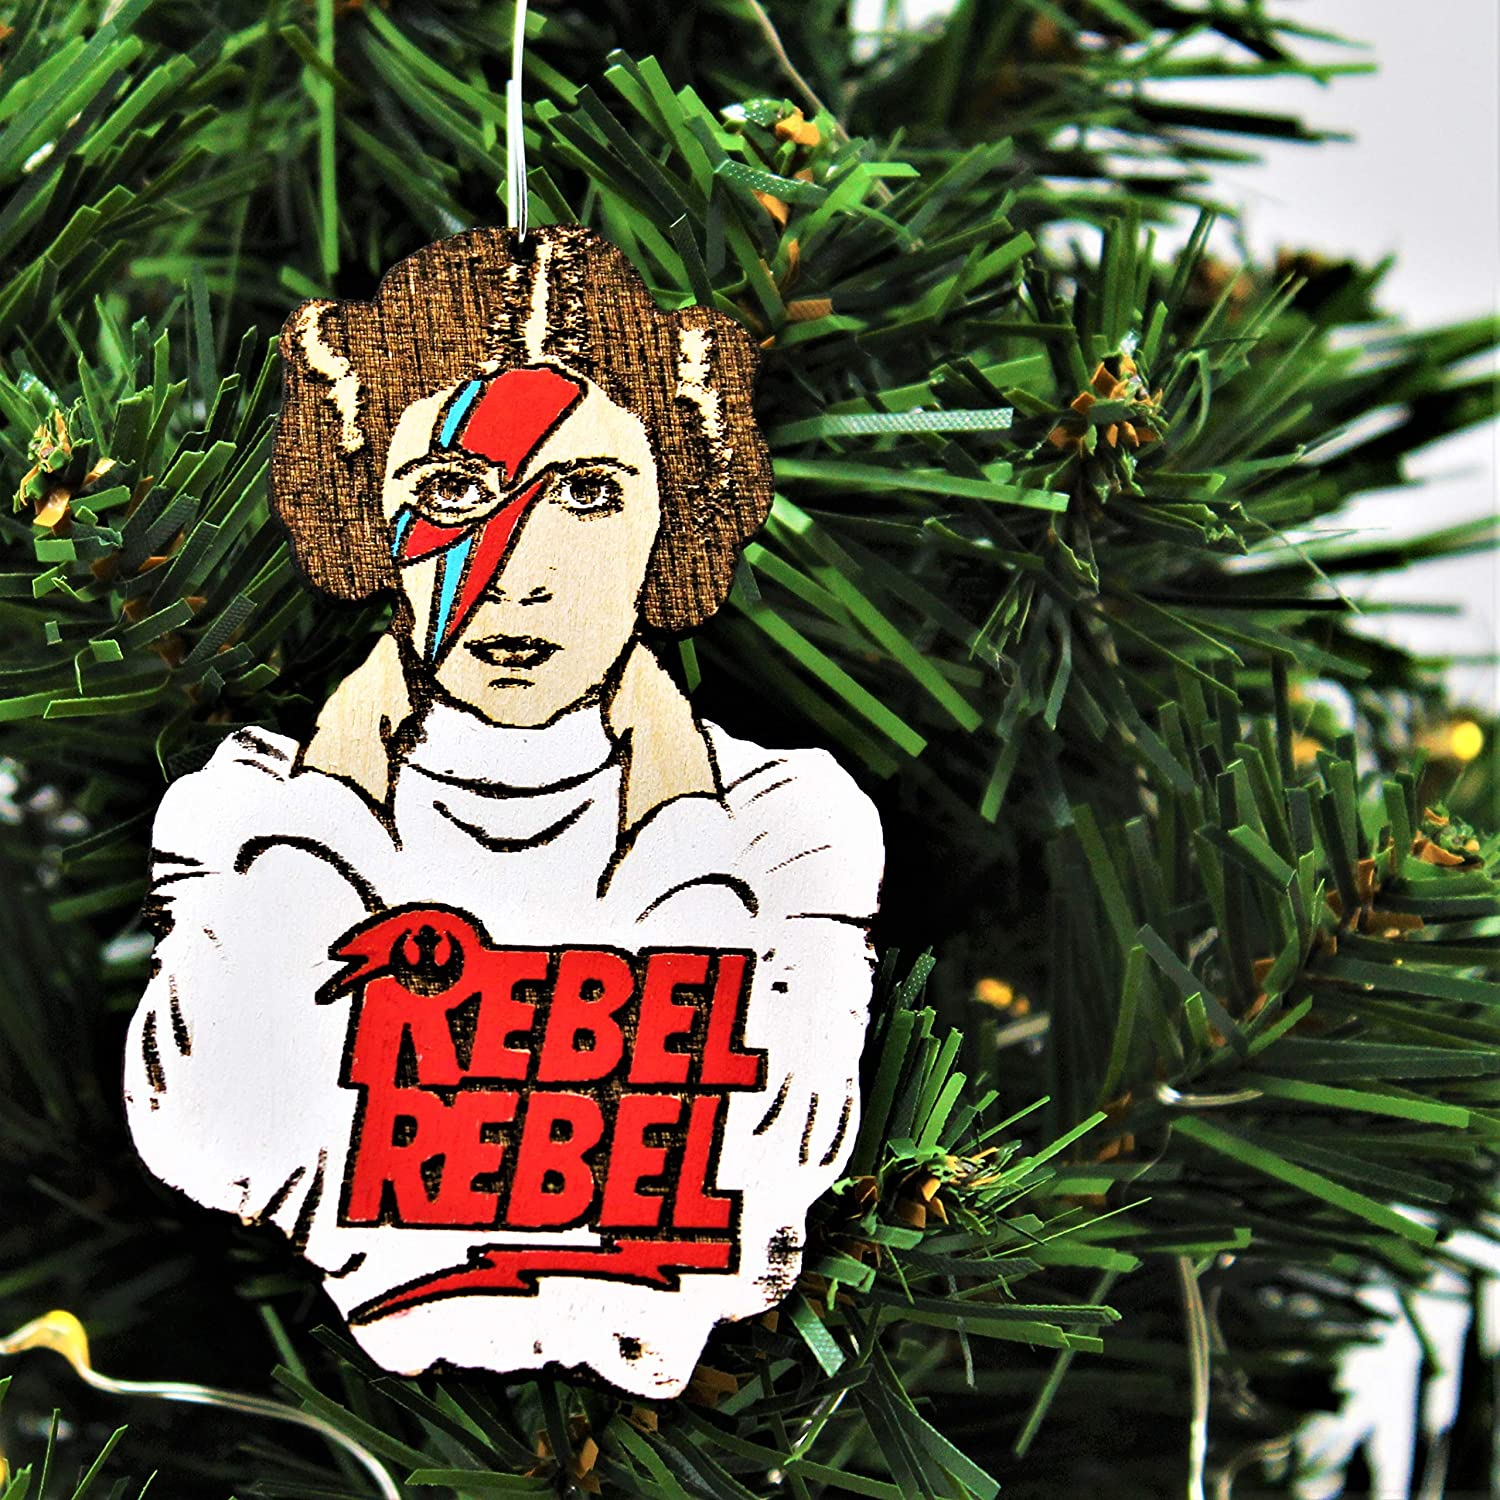 Princess Leia Rebel Rebel Christmas Ornament Hand-Painted Star Wars Rockstar Carrie Fisher Rebel Alliance Mashup Wood Laser Cut Holiday Decoration